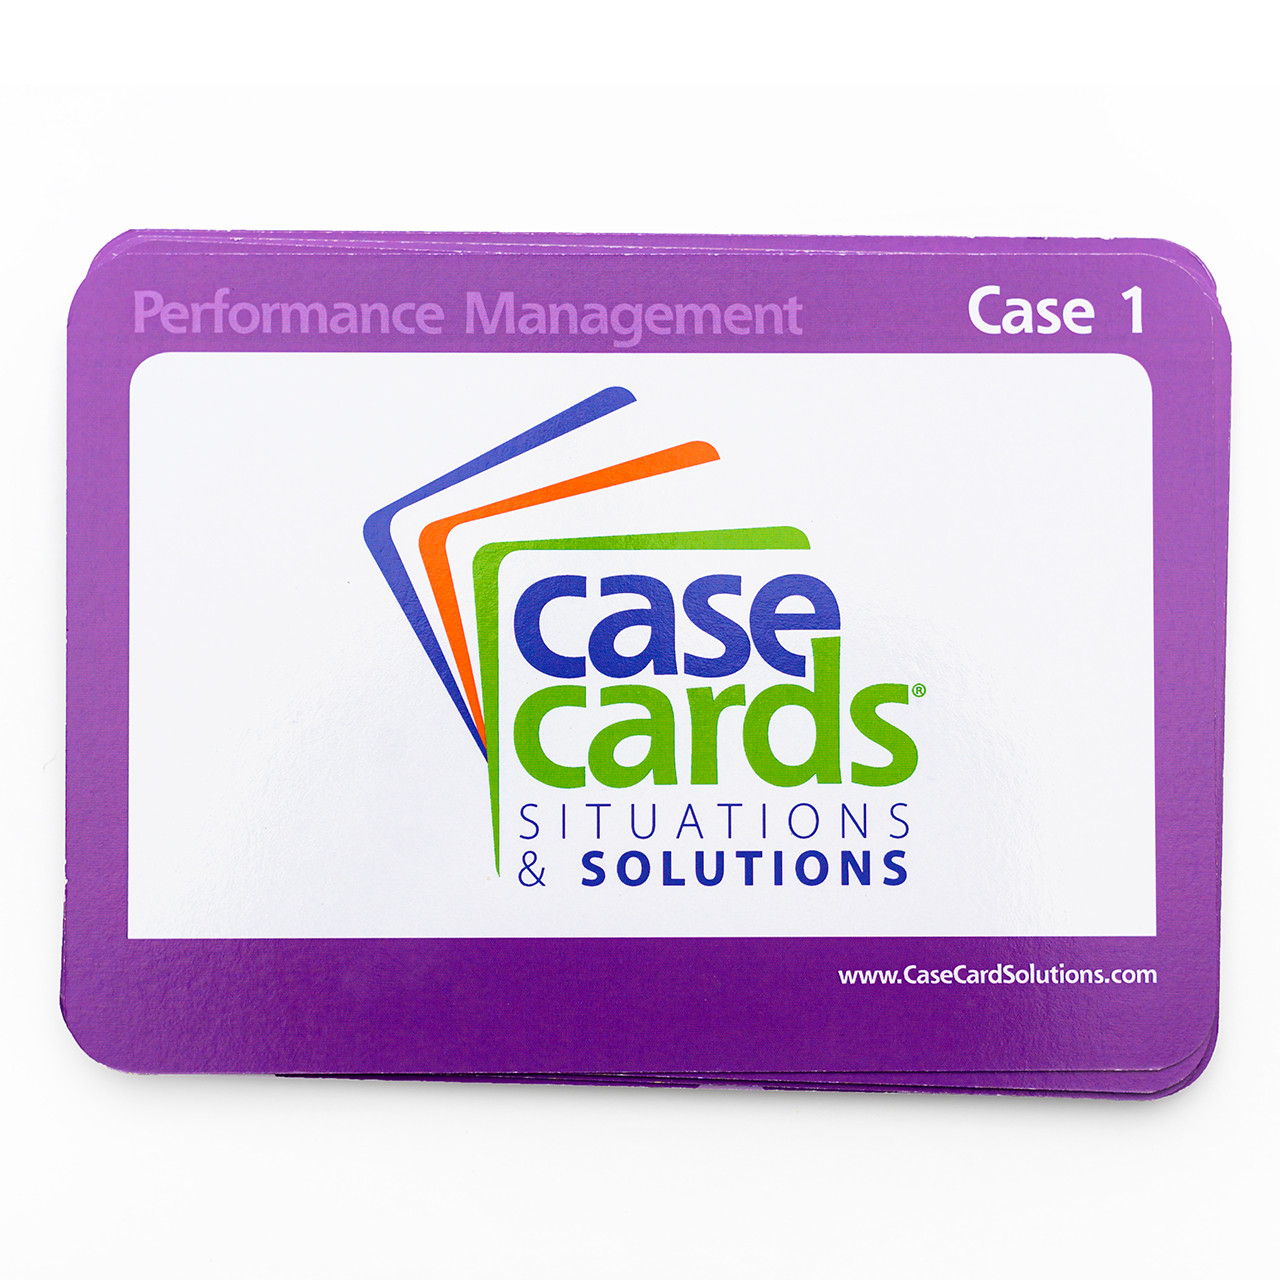 CaseCards - Performance Management Front